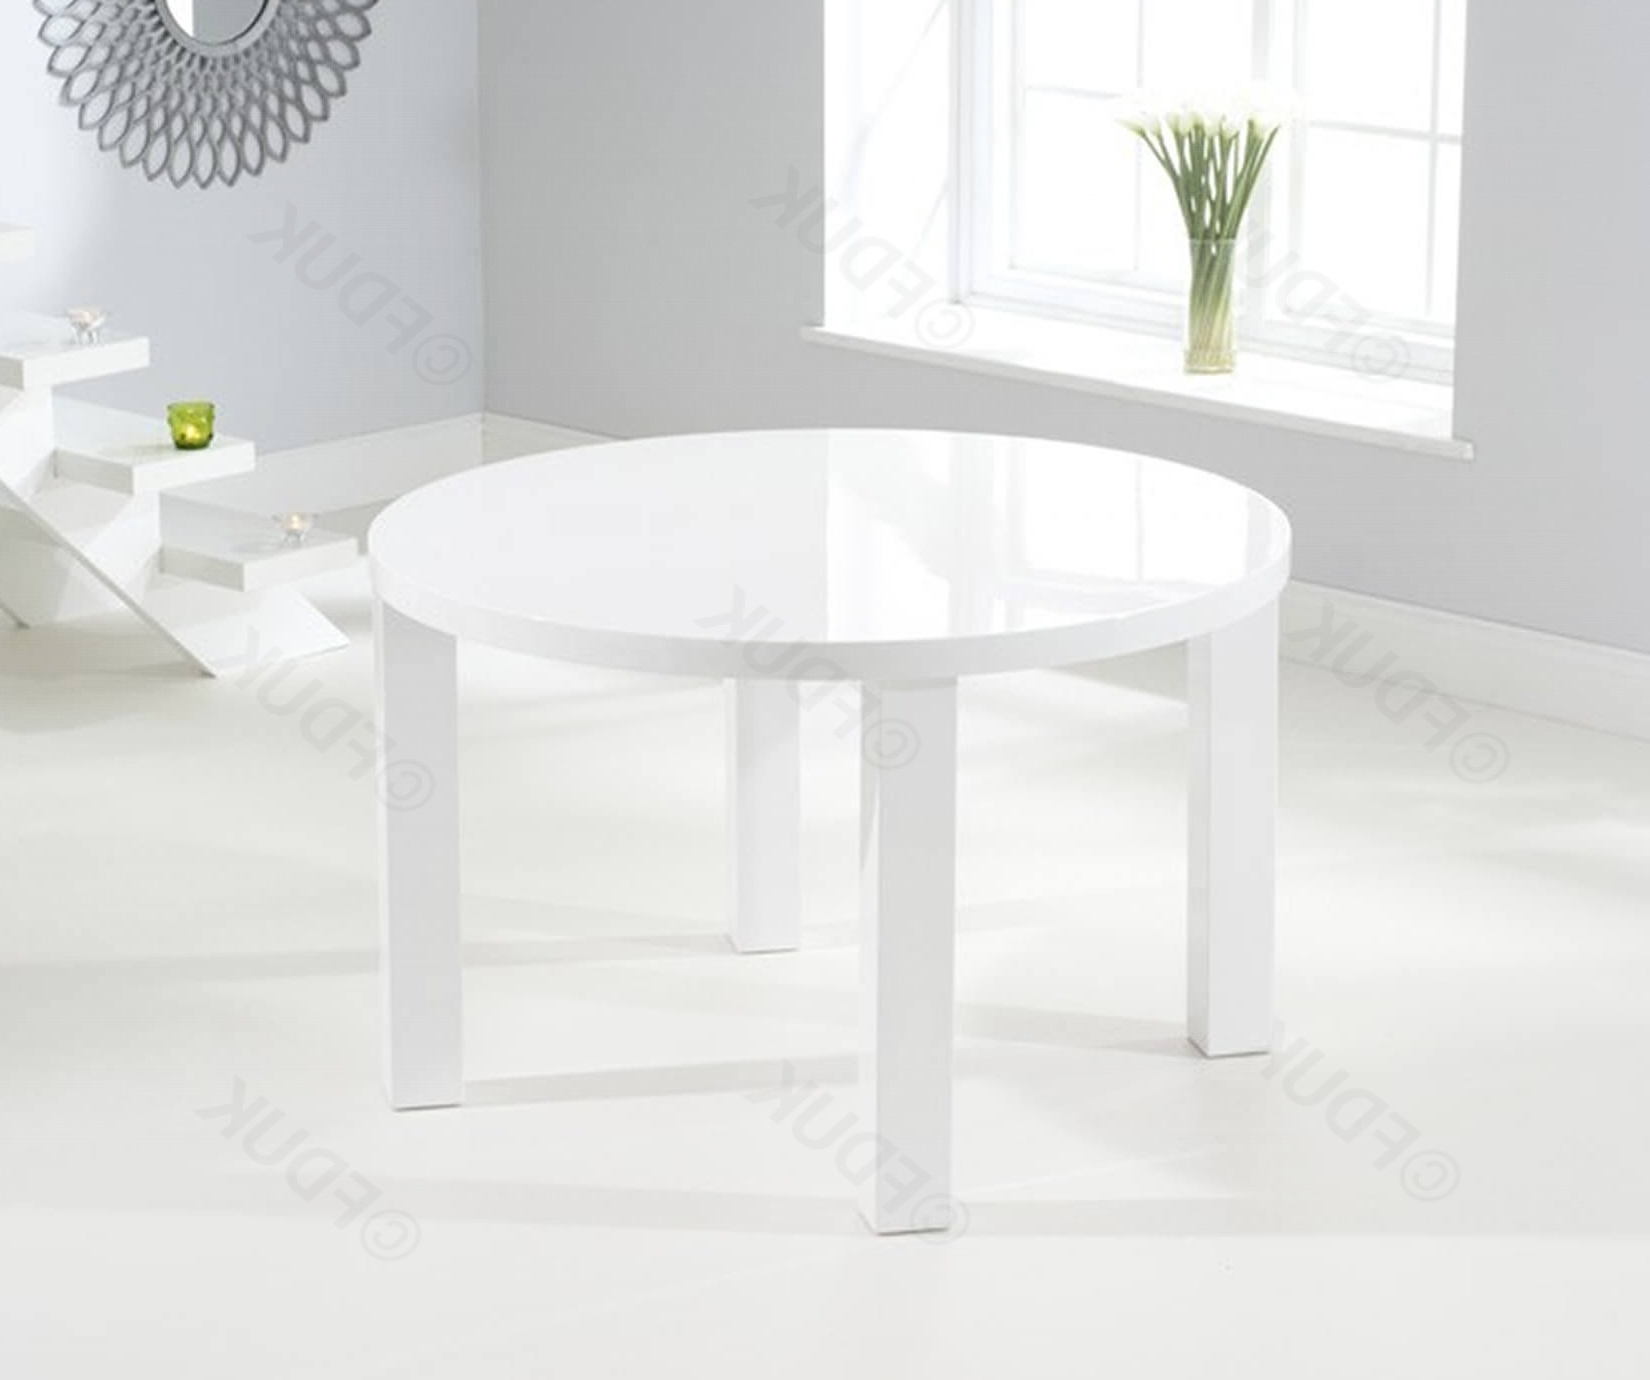 Ava Medium Round High Gloss Dining Table Only Pertaining To Round High Gloss Dining Tables (View 1 of 25)